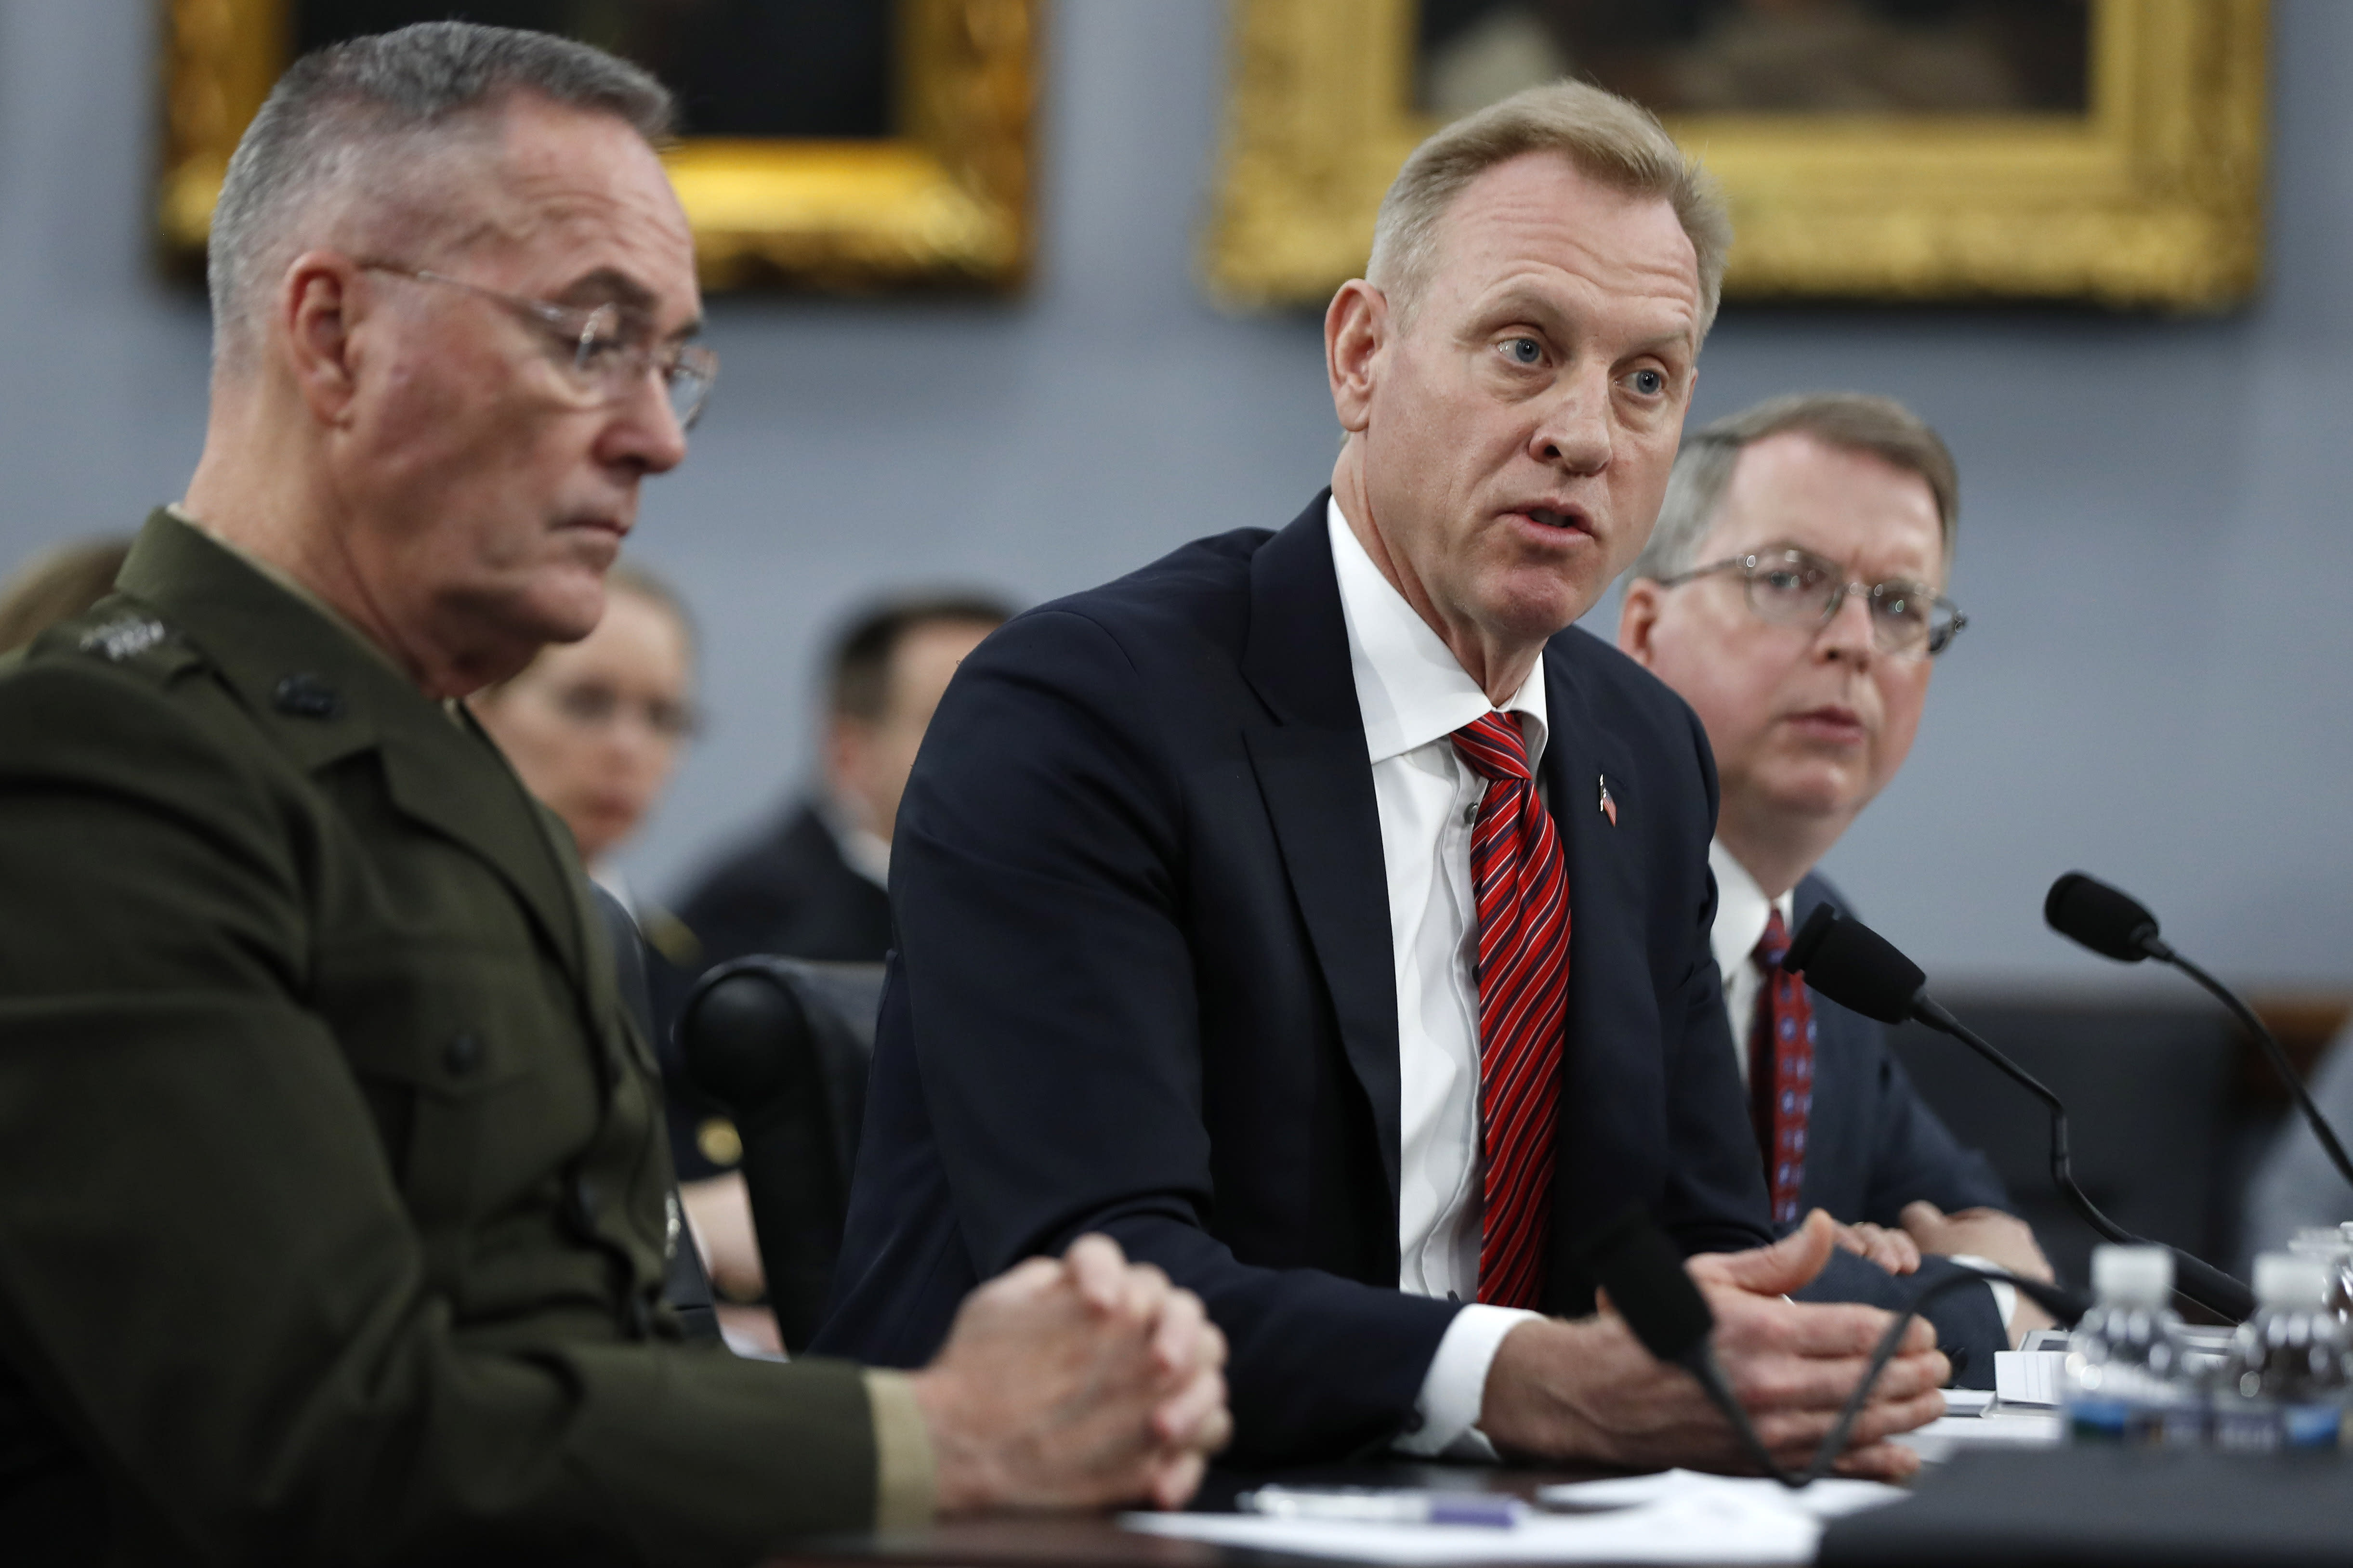 Joint Chiefs of Staff Chairman Gen. Joseph Dunford, left, Acting Defense Secretary Patrick Shanahan, and Acting Deputy Secretary of Defense David Norquist, testify, Wednesday May 1, 2019, to a House Appropriations subcommittee on budget hearing on Capitol Hill in Washington. (AP Photo/Jacquelyn Martin)